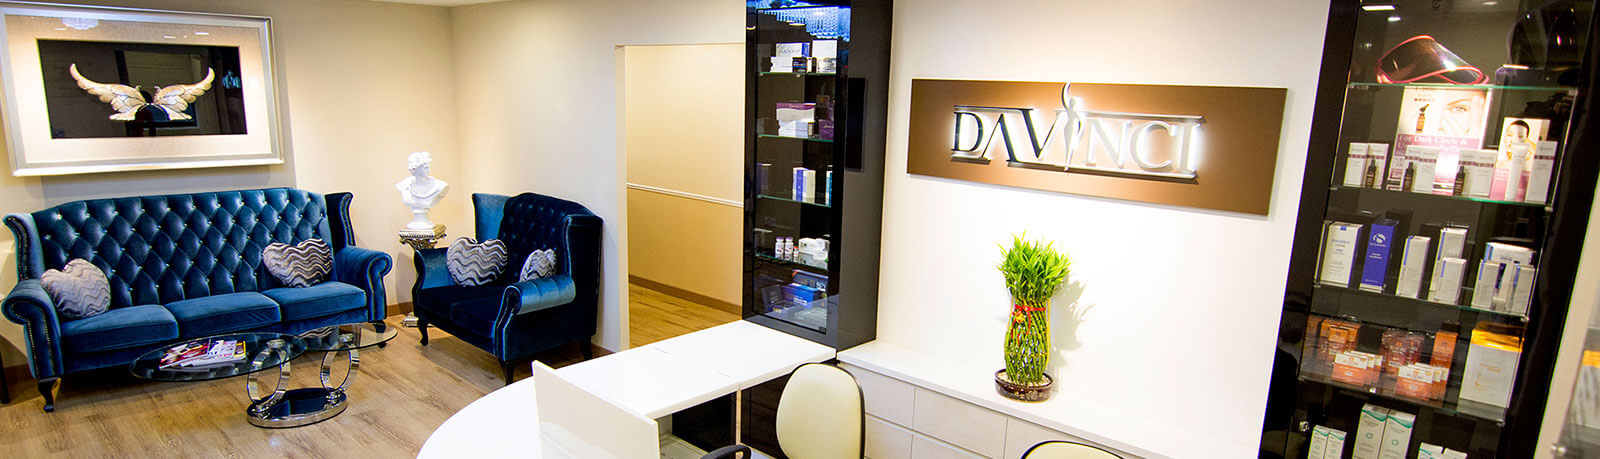 DaVinci Clinic Mid Valley-KL